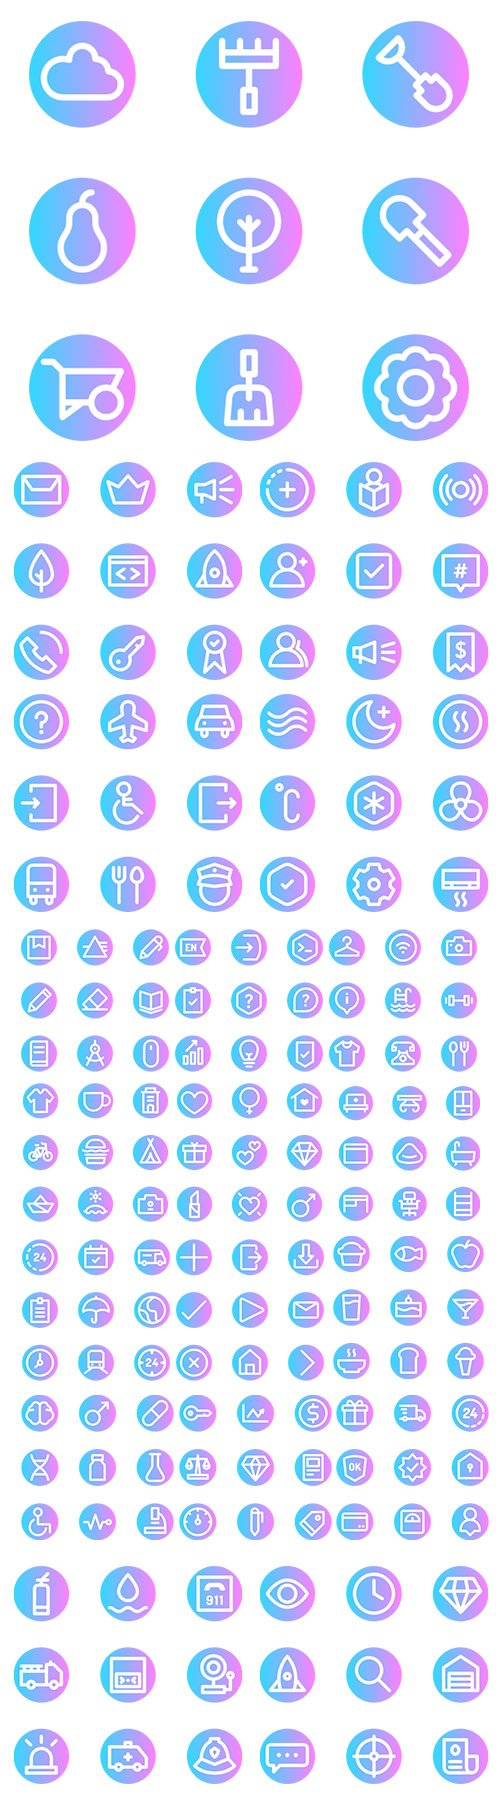 900+ Basic Rounded Circular Vector Icons Set